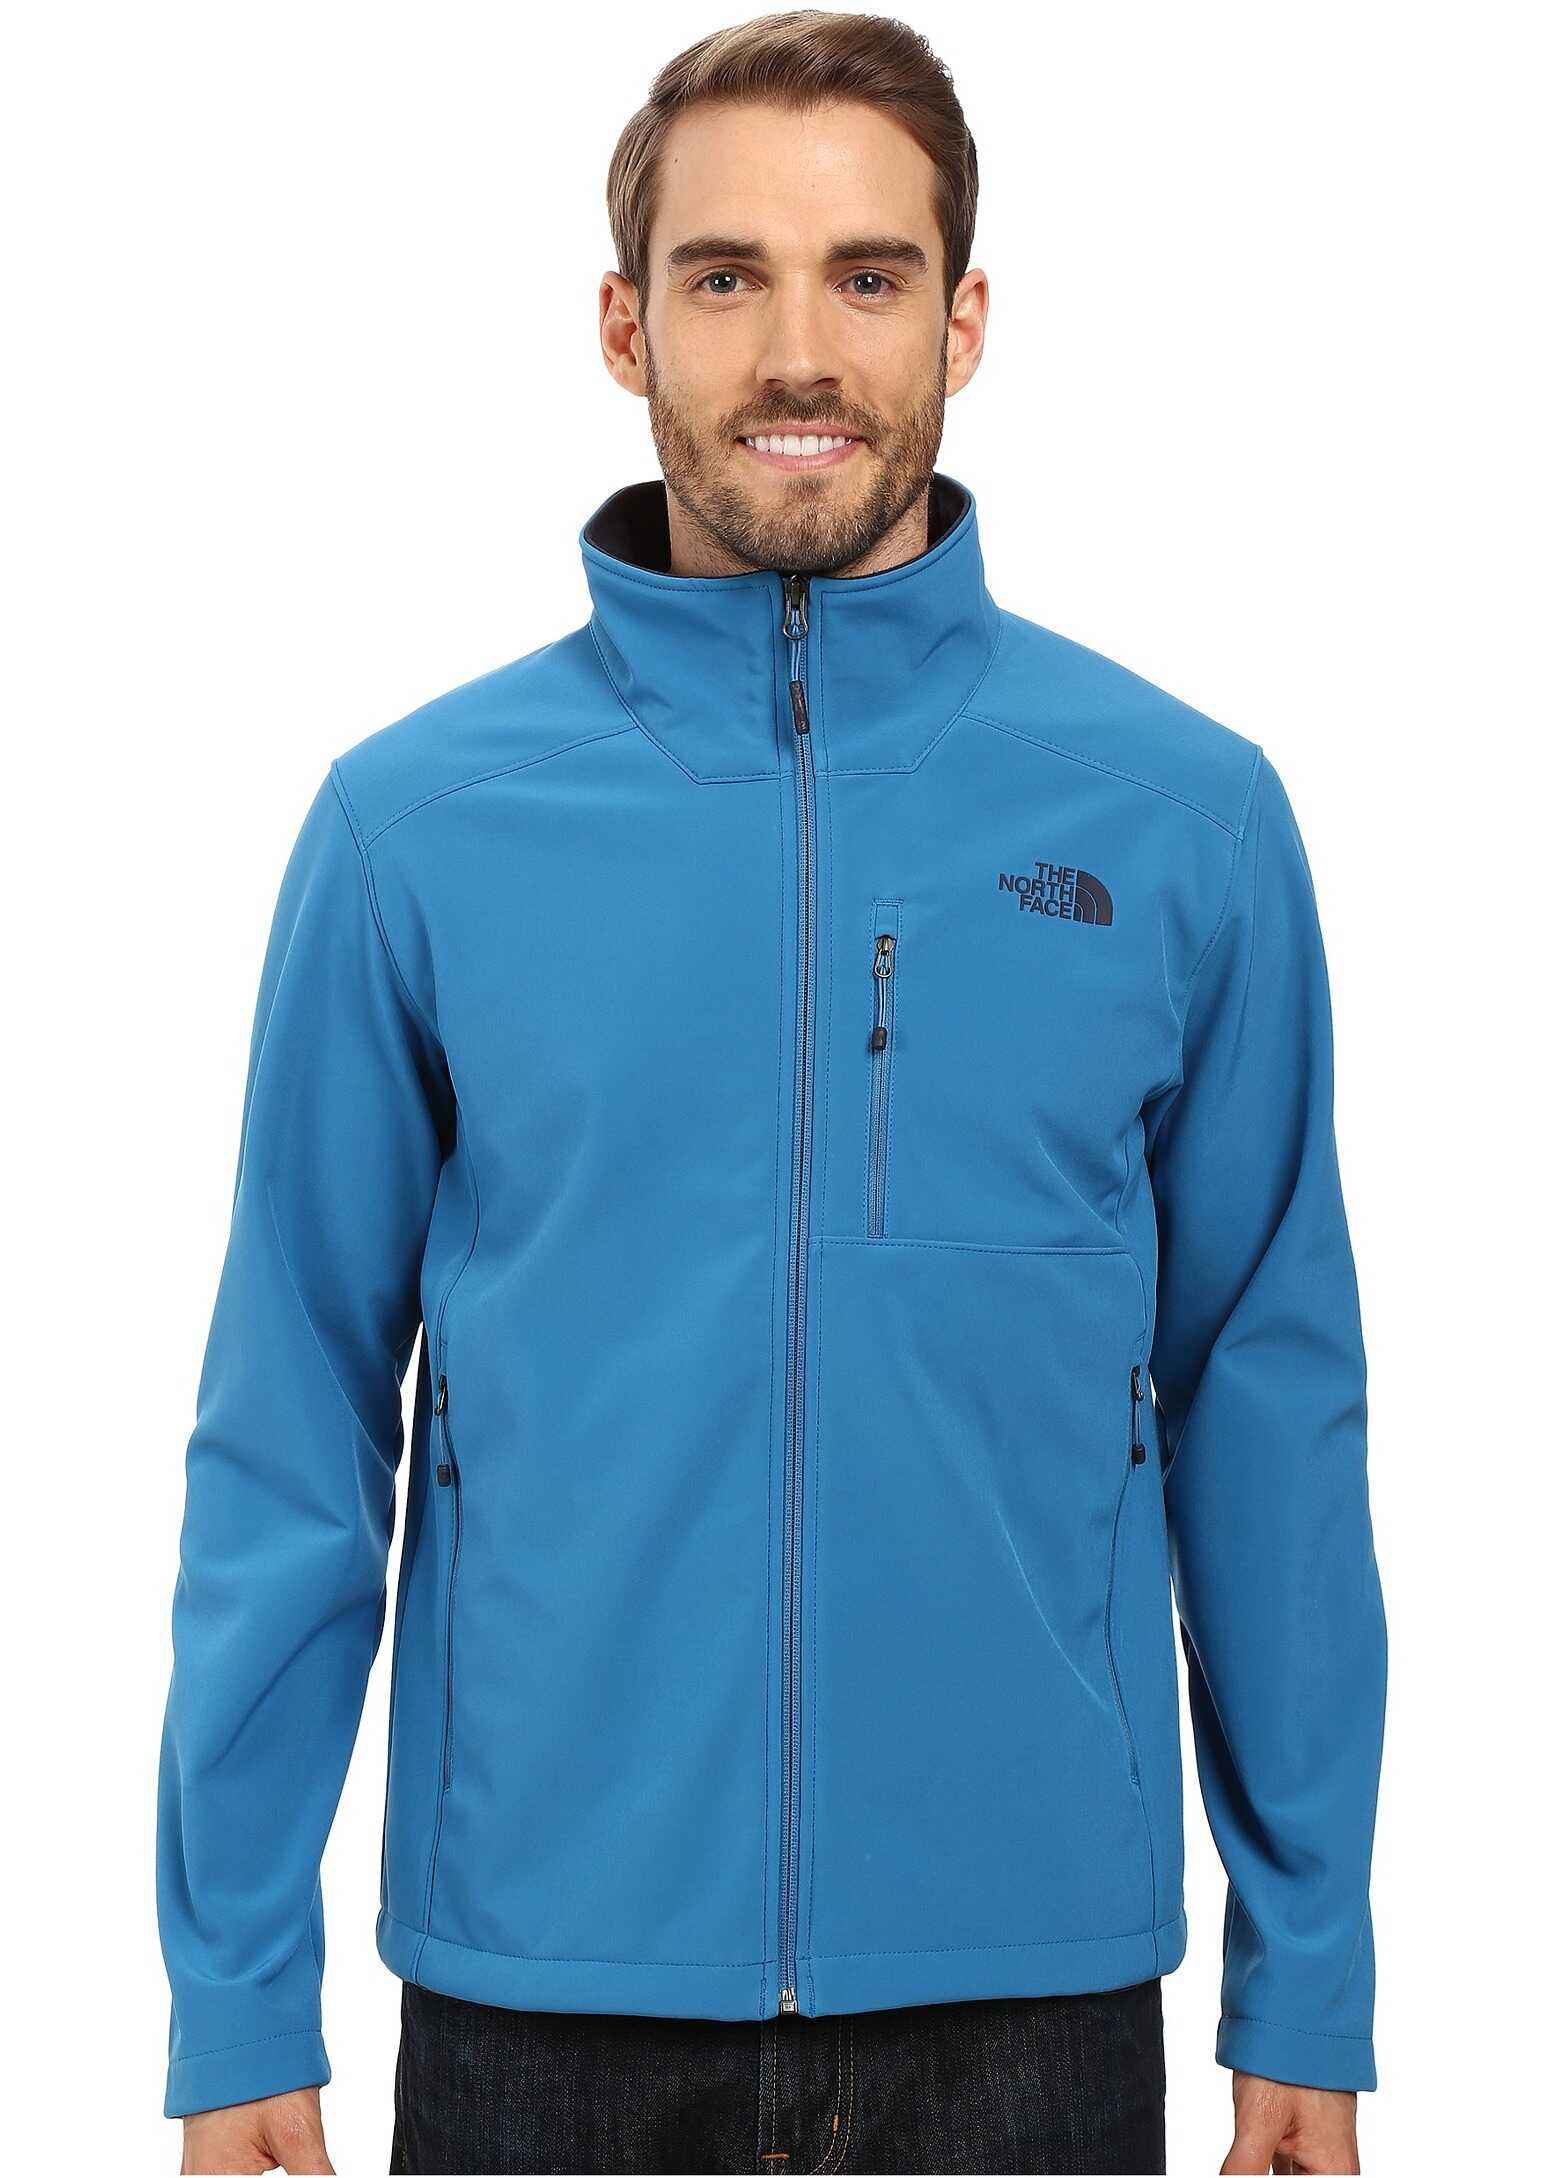 The North Face Apex Bionic 2 Jacket Banff Blue/Banff Blue (Prior Season)